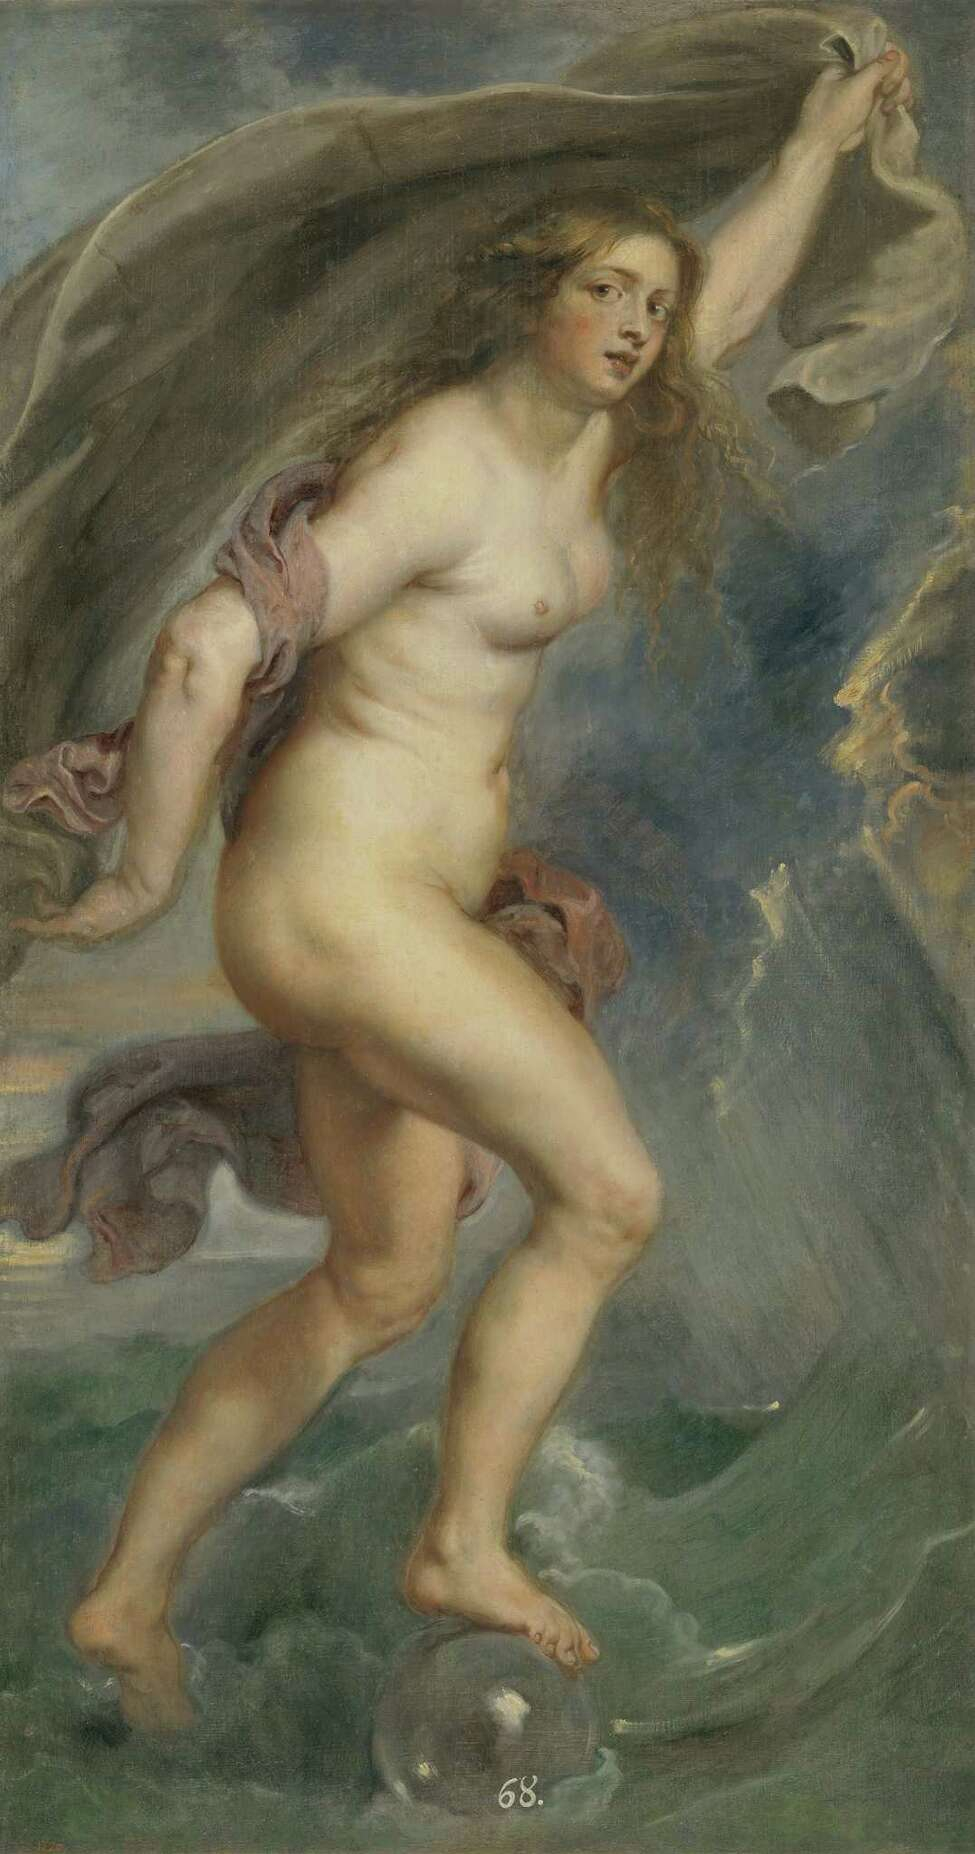 Peter Paul Rubens (Flemish, 1577?-1640), Fortuna, 1636?-38. Oil on canvas, 71 3/4 x 39 5/8 in.